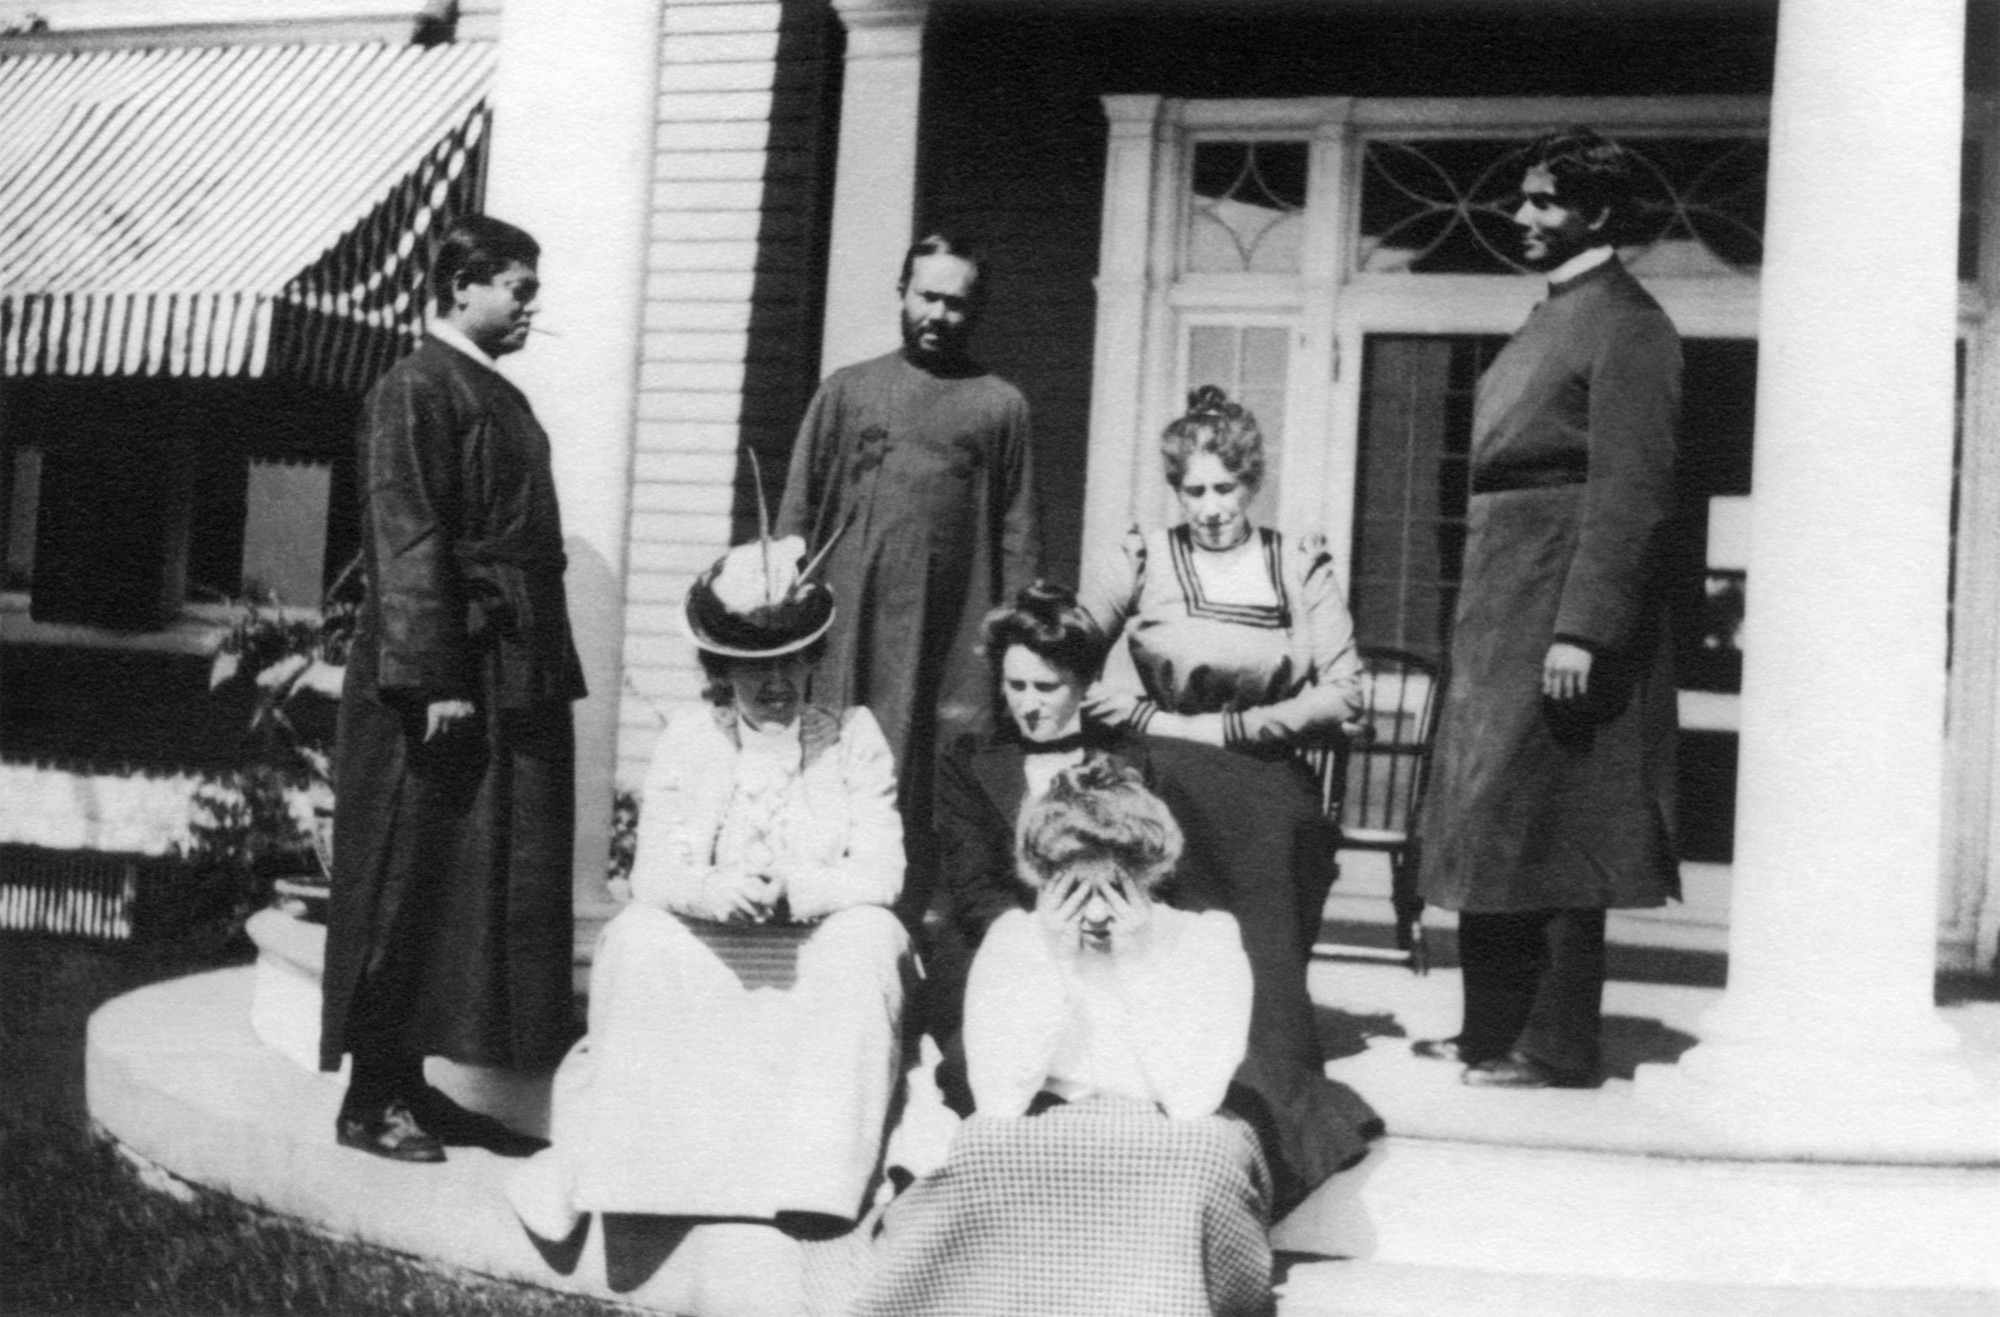 (#78) Ridgely Manor, New York, September 1899. Same group, same day as #77. We see Swamiji standing and looking unwell, and Alberta with her face in her hands, shielding her eyes from the afternoon sun.